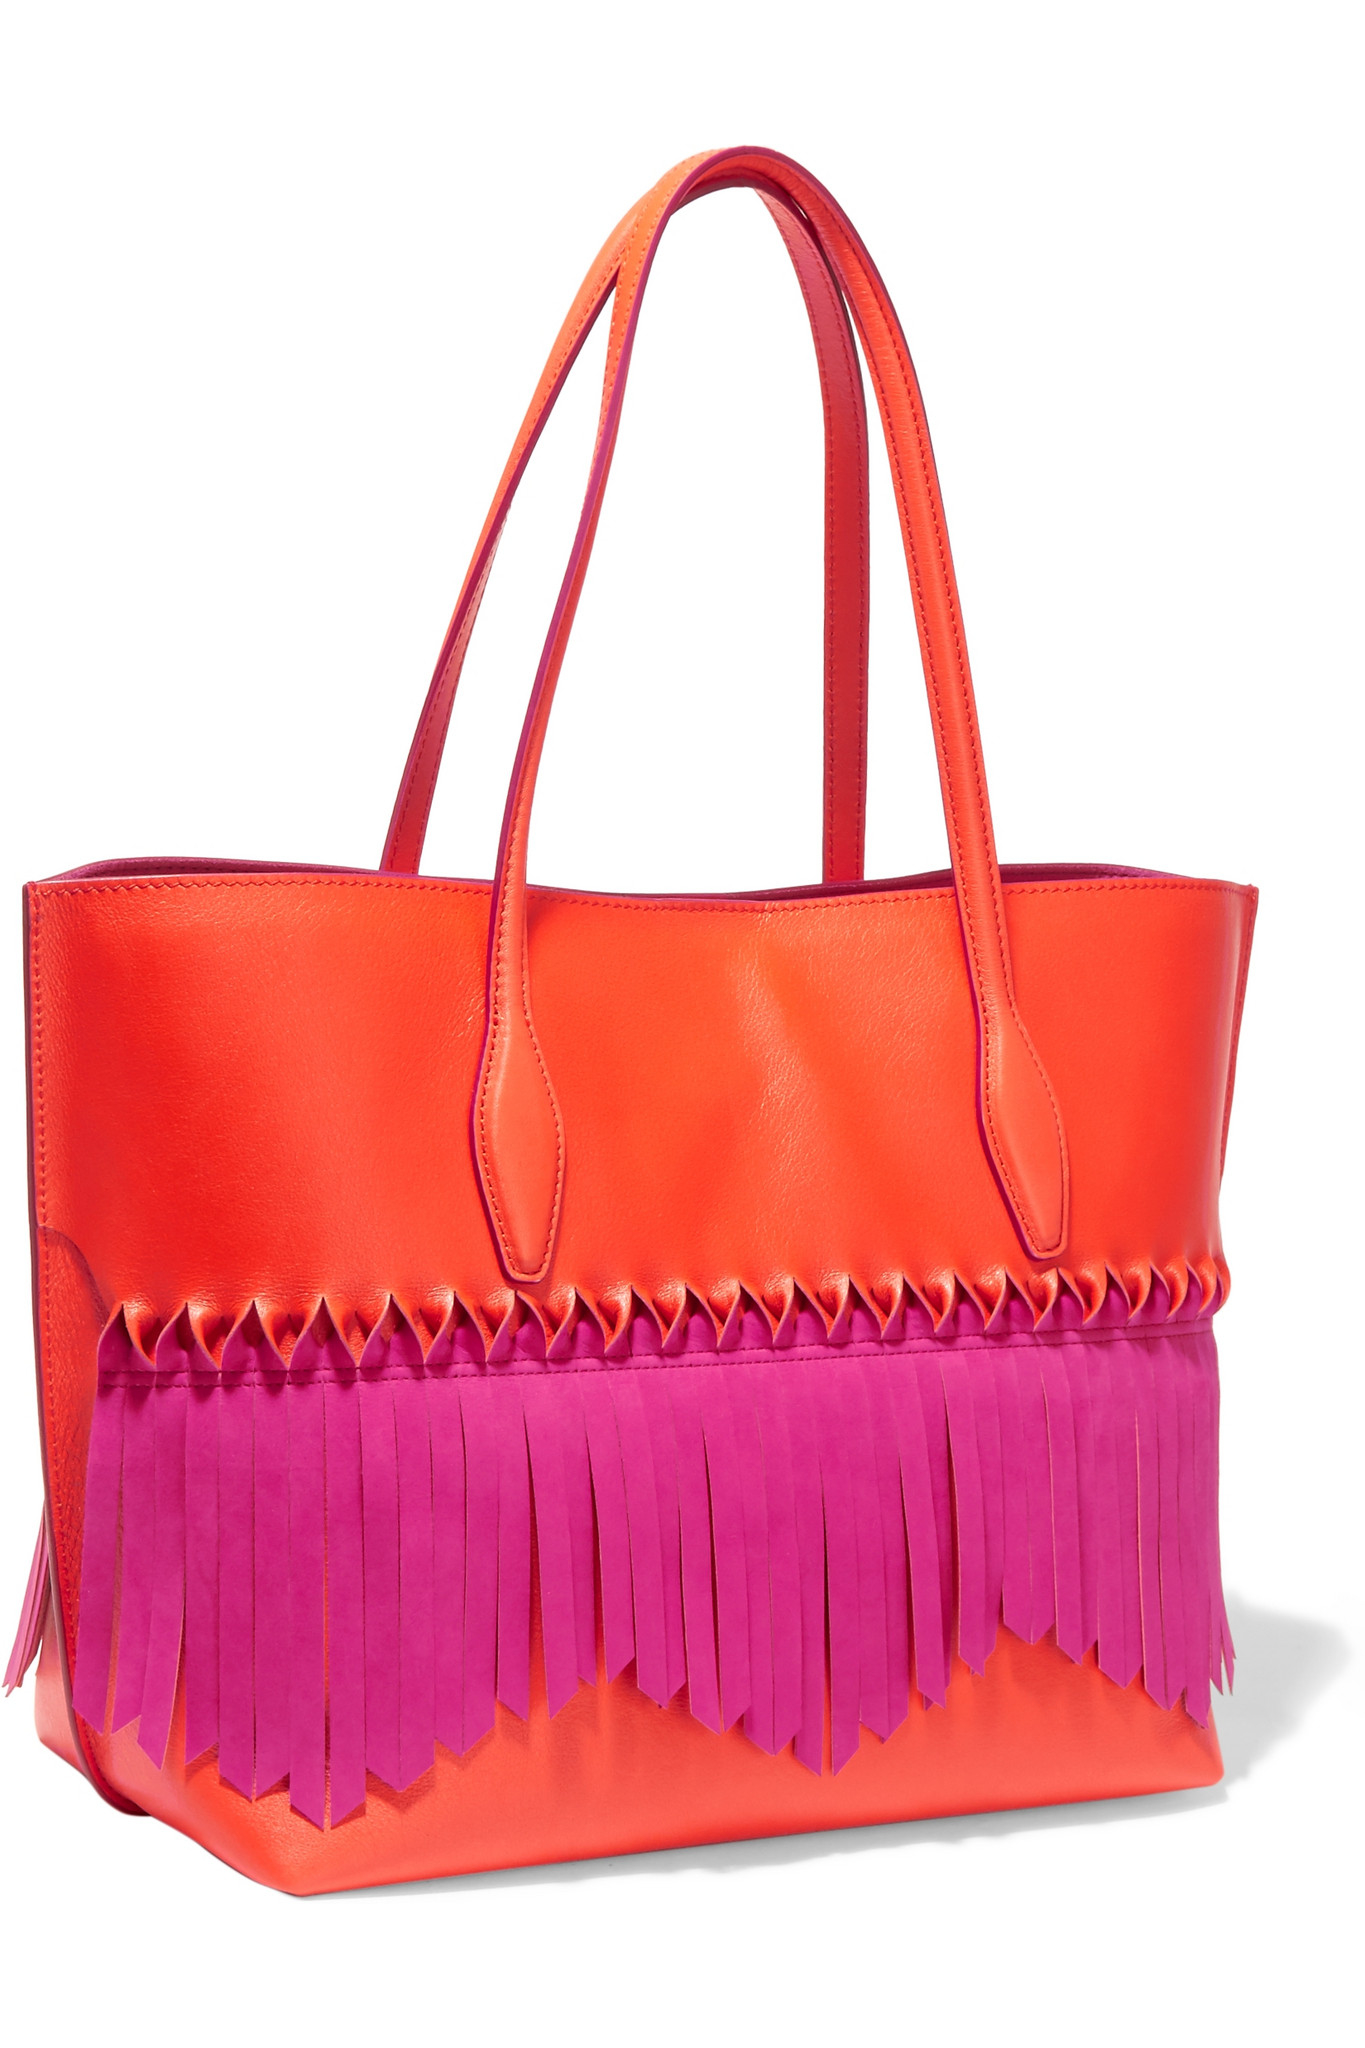 Lyst - Tod'S Joy Origami Fringed Leather Tote in Purple - photo#23